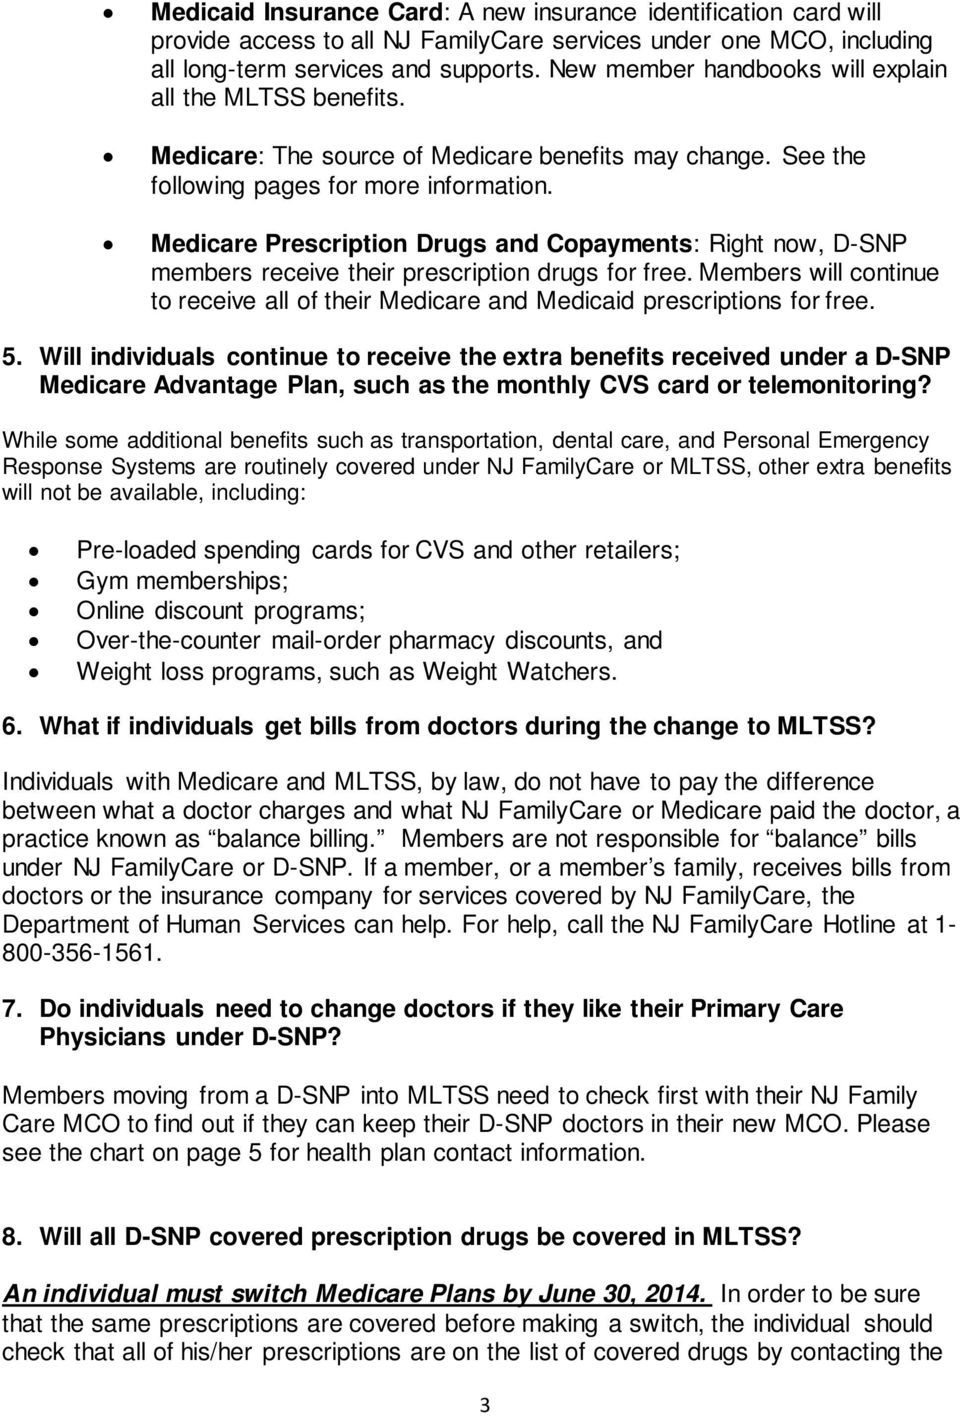 NJ DEPARTMENT OF HUMAN SERVICES FREQUENTLY ASKED QUESTIONS